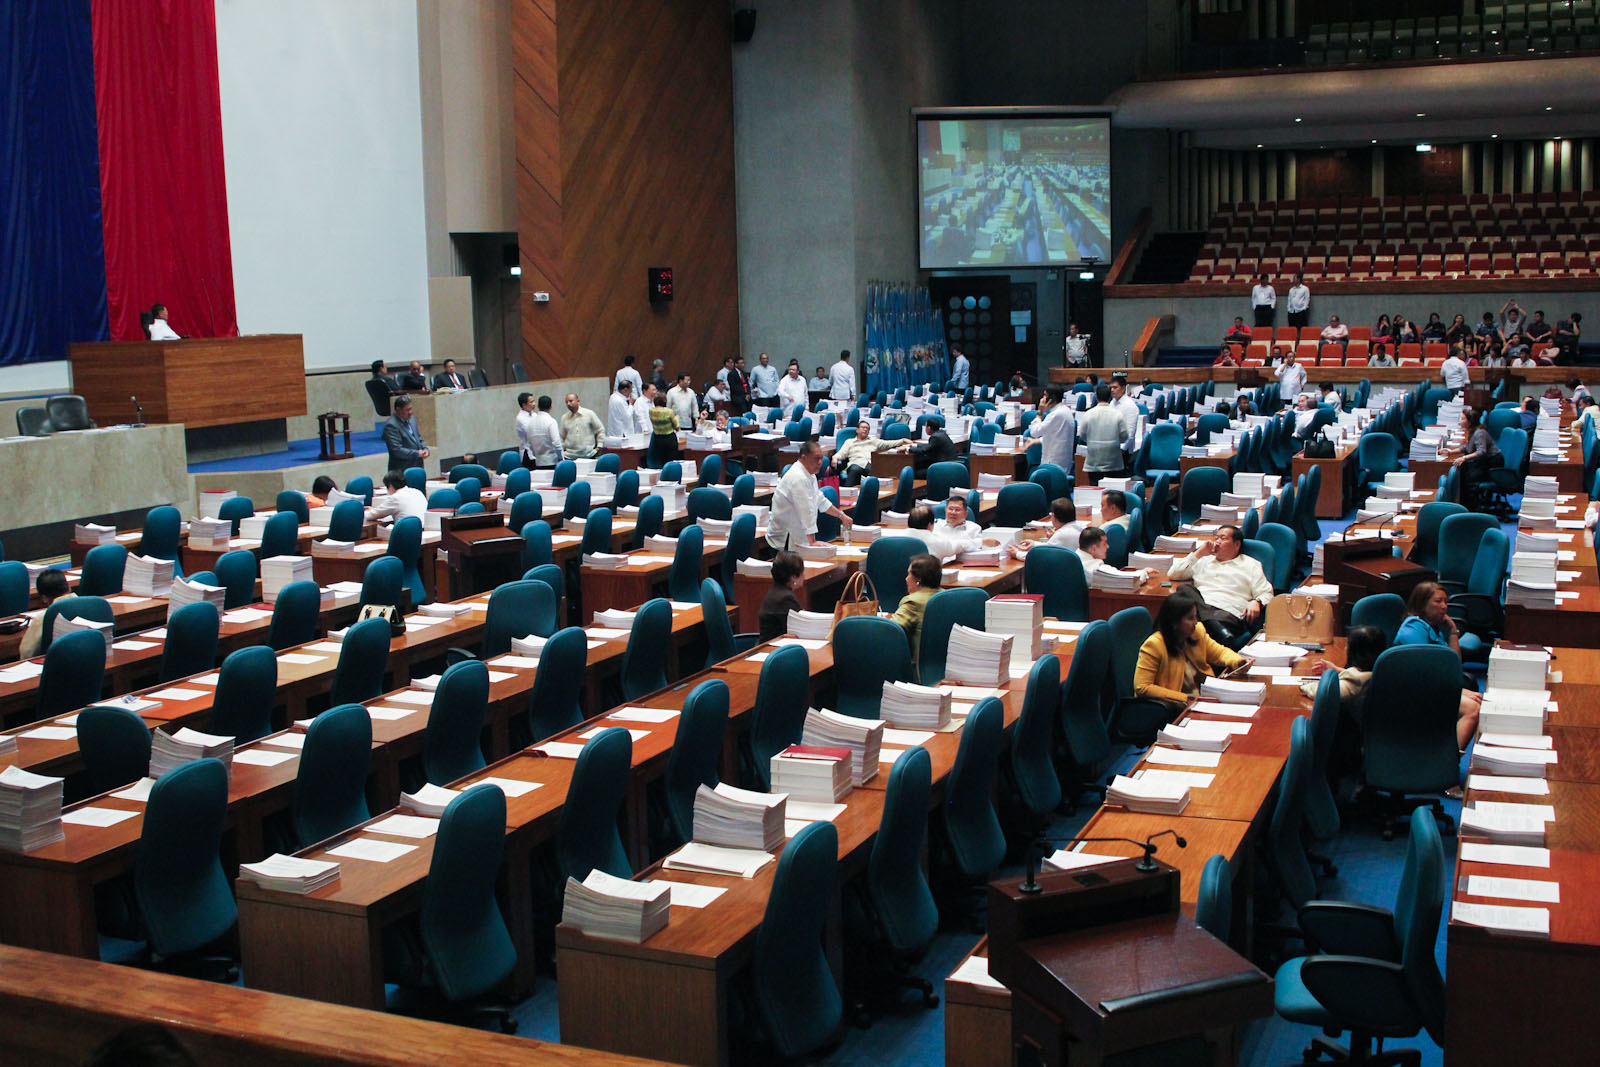 Most of the seats of the House members are empty as interpellation for House Bill 5811 continued on June 4, 2015. Session was adjourned before 6 p.m. on August 4, supposedly the resumption of the period of interpellation on HB 5811, due to lack of quorum. MindaNews file photo by Toto Lozano